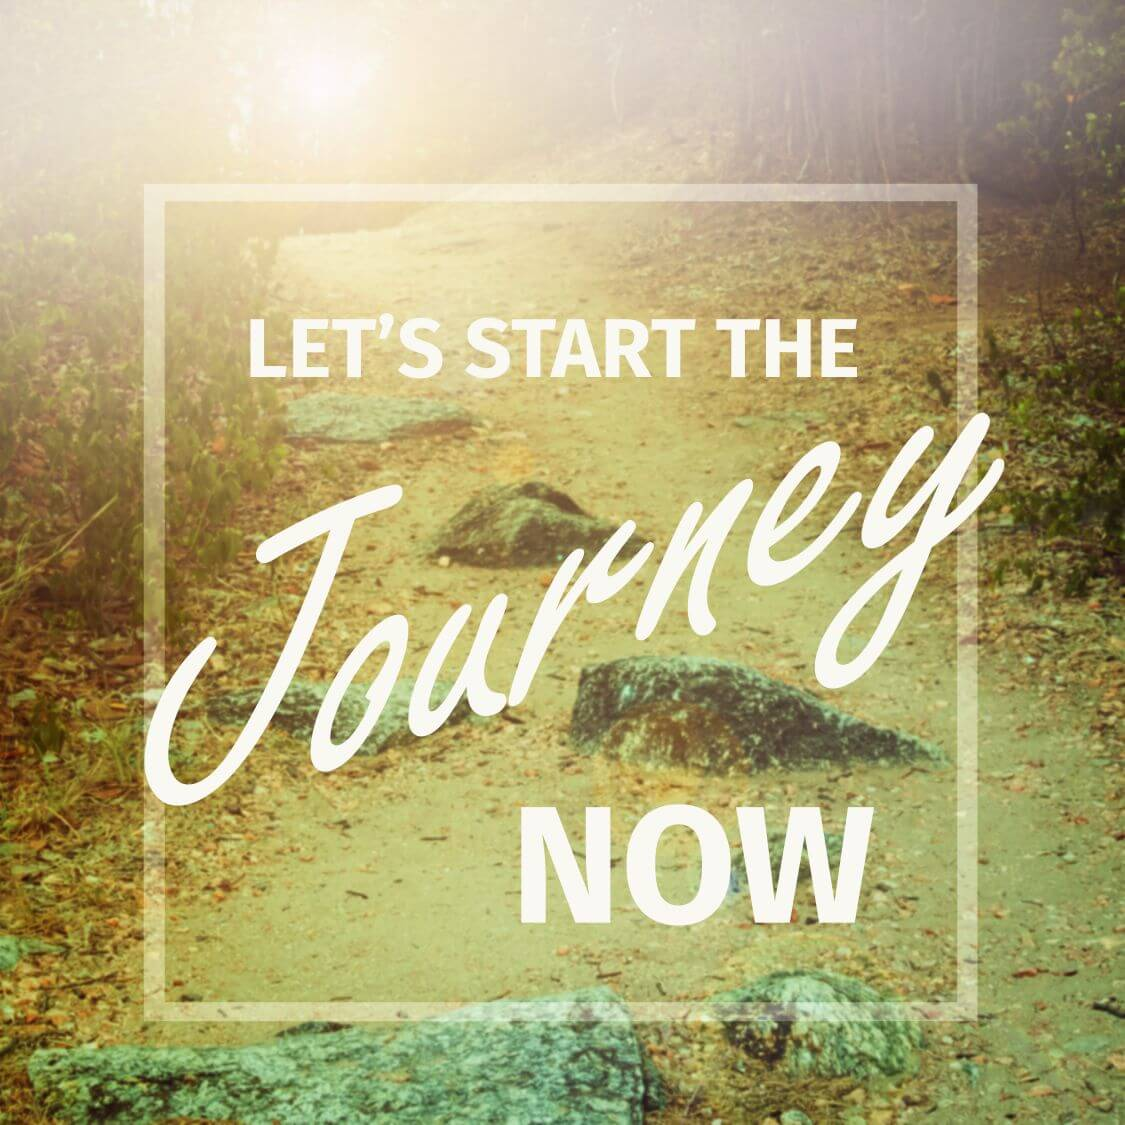 Let's start the journey now written on nature scenery